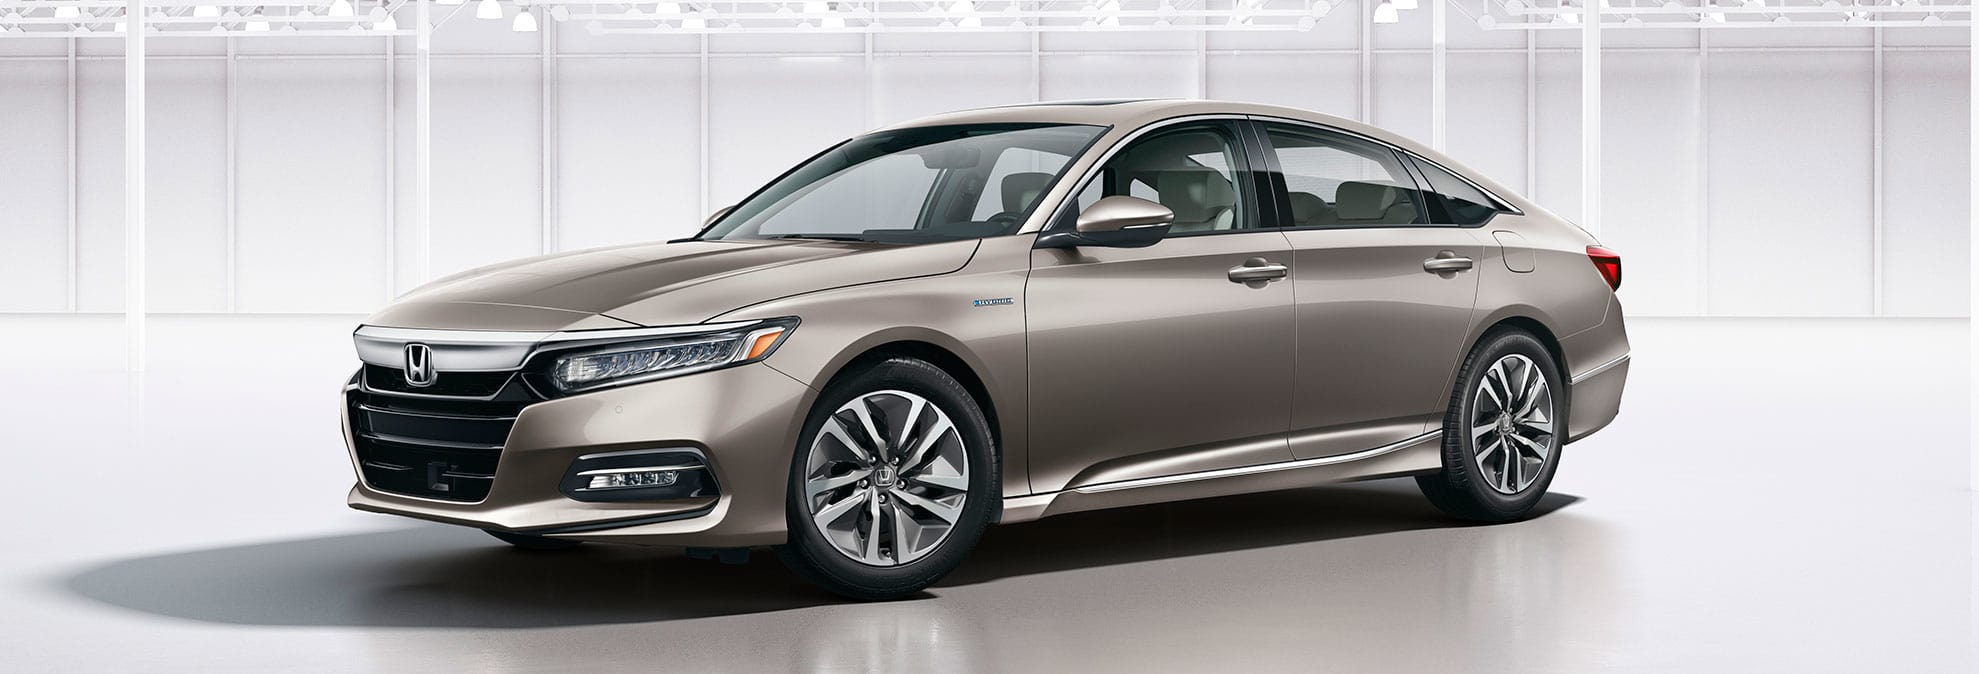 2018 Honda Accord Preview - Consumer Reports